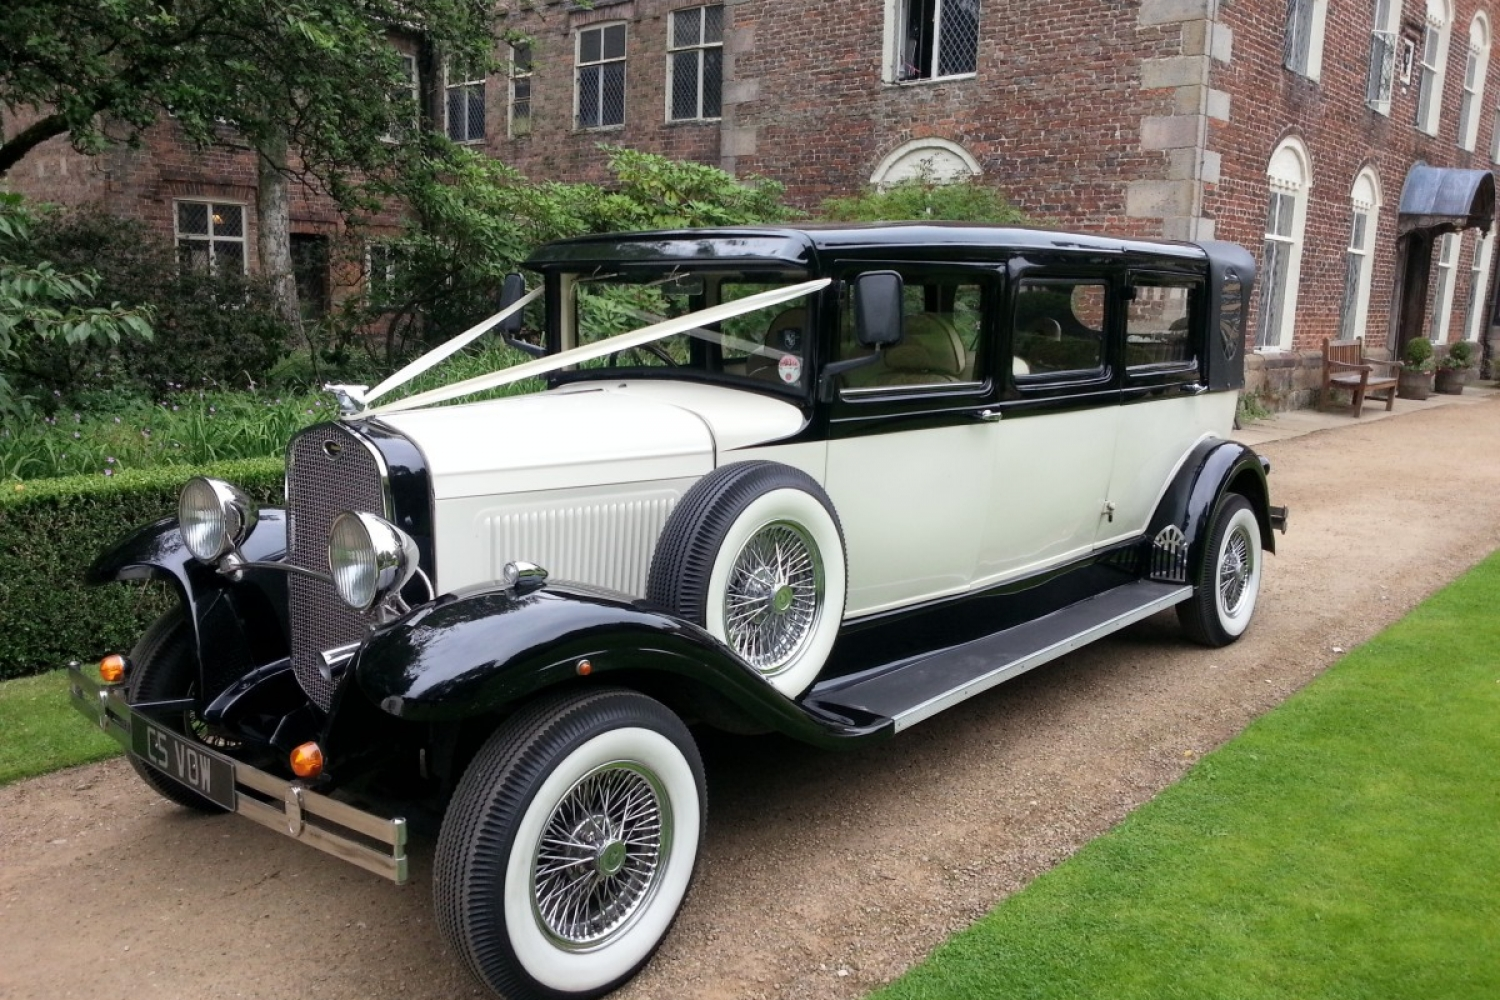 1920s Style Bramwith Convertible Limousine